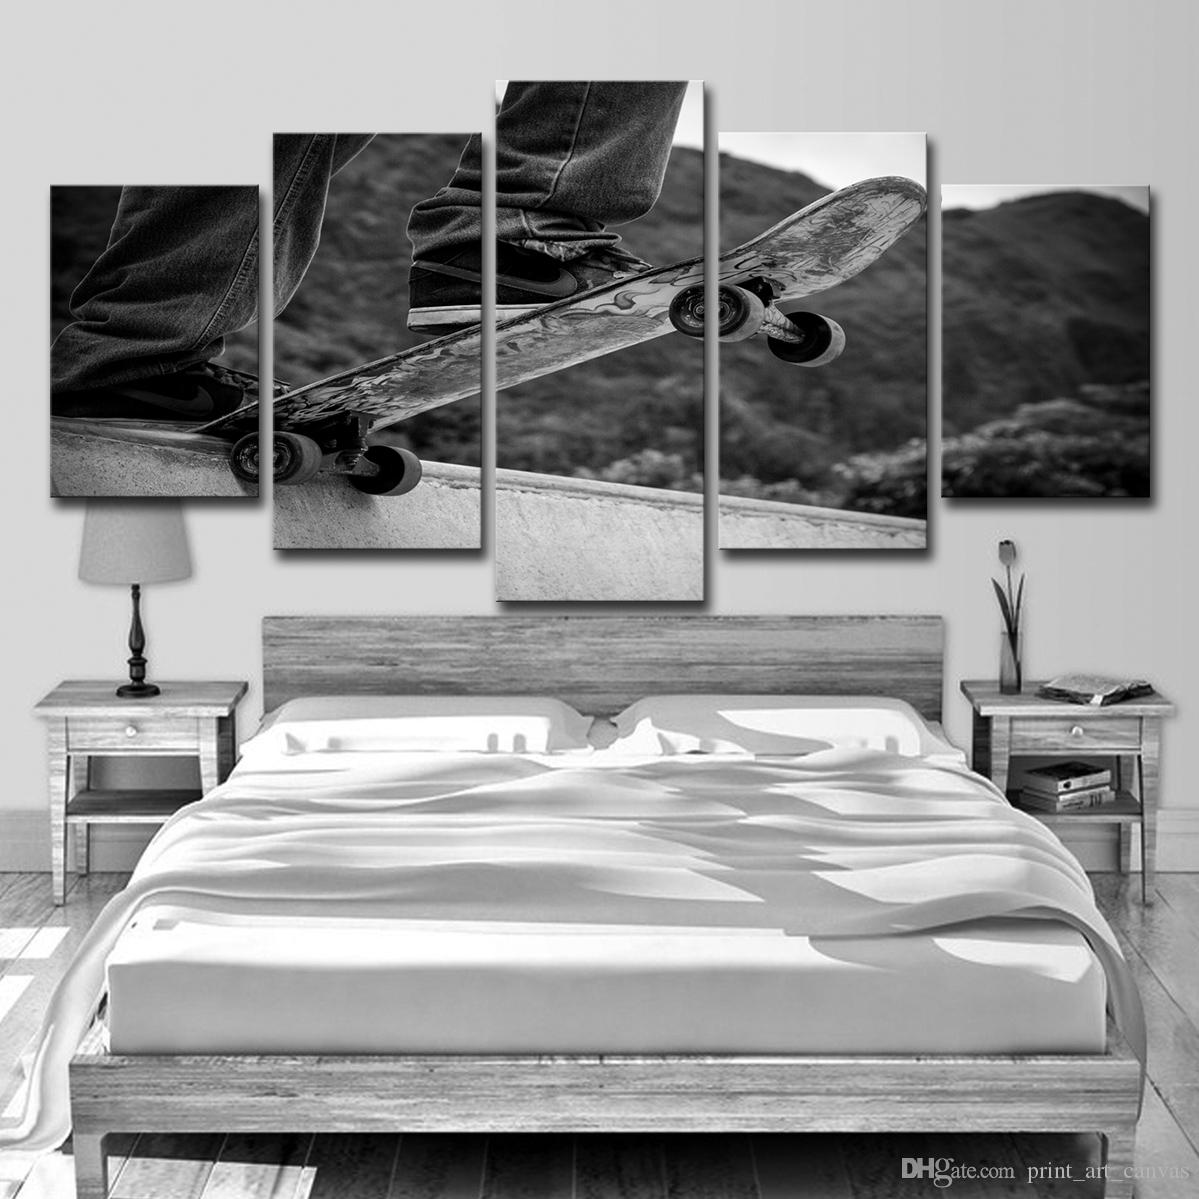 Skateboard  HD Canvas prints Painting Home decor Picture Room Wall art Poster